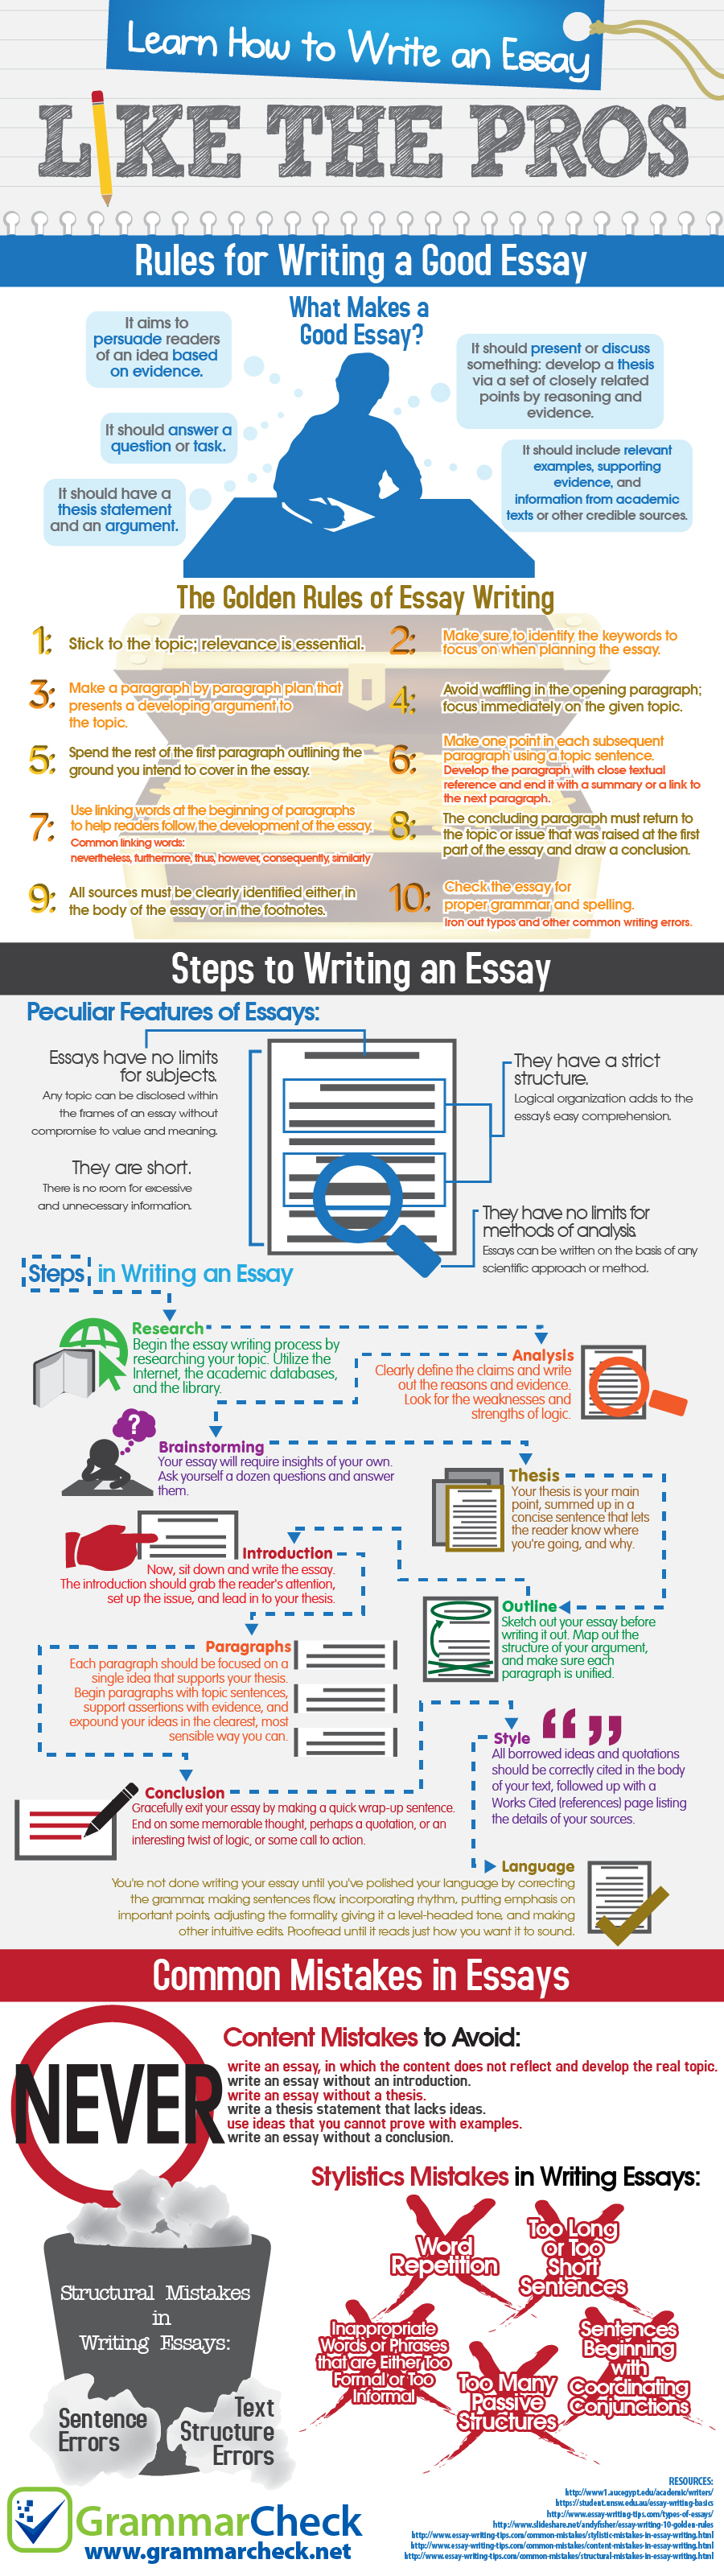 steps to follow when writing an academic essay How to write an academic essay and to learn if there are any specific rules you need to follow the first step in writing an academic paper is finding good.